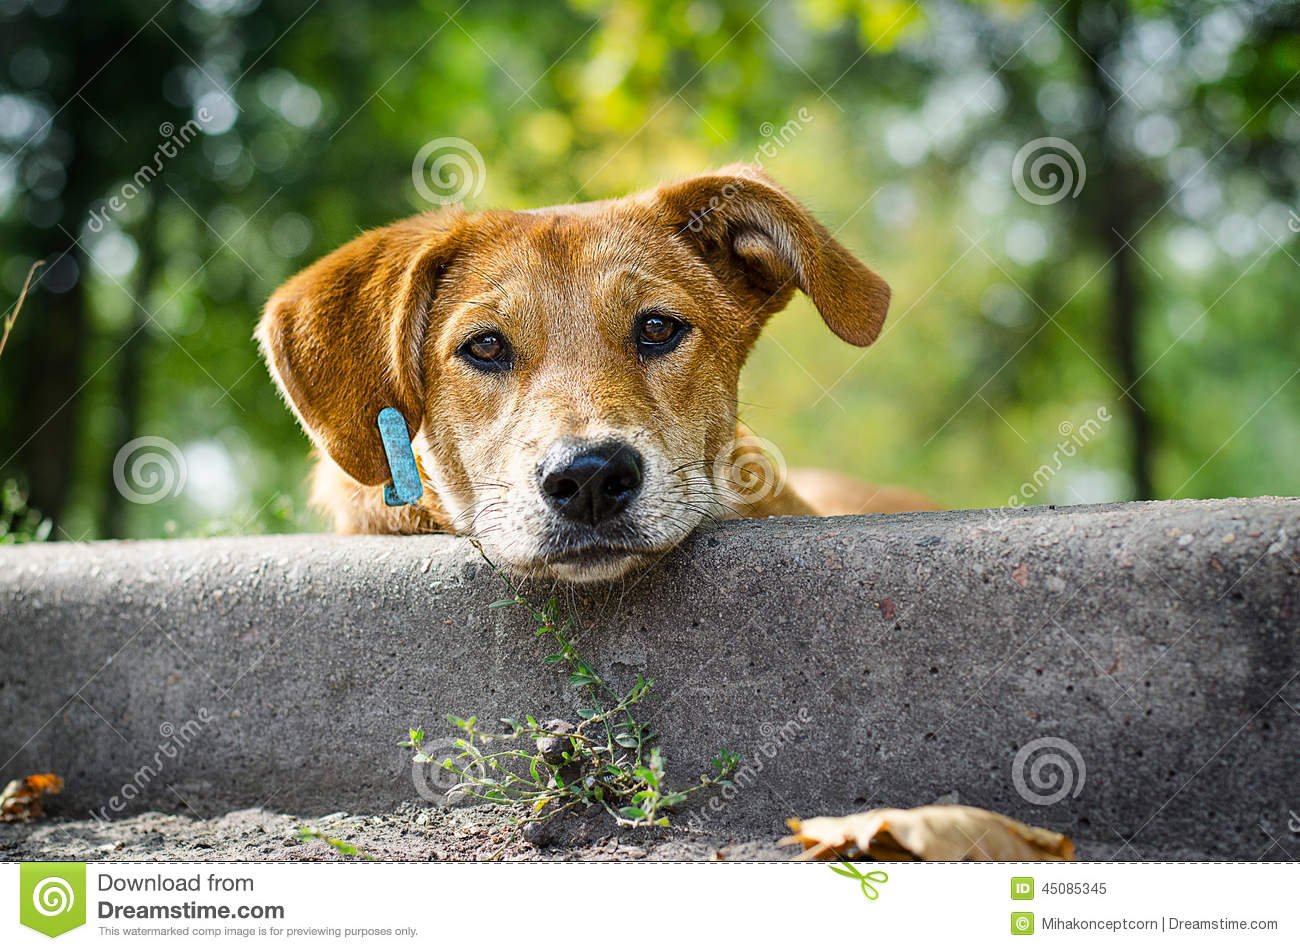 Stray Dog with Sad Eyes Stock Photo - Image: 45085345